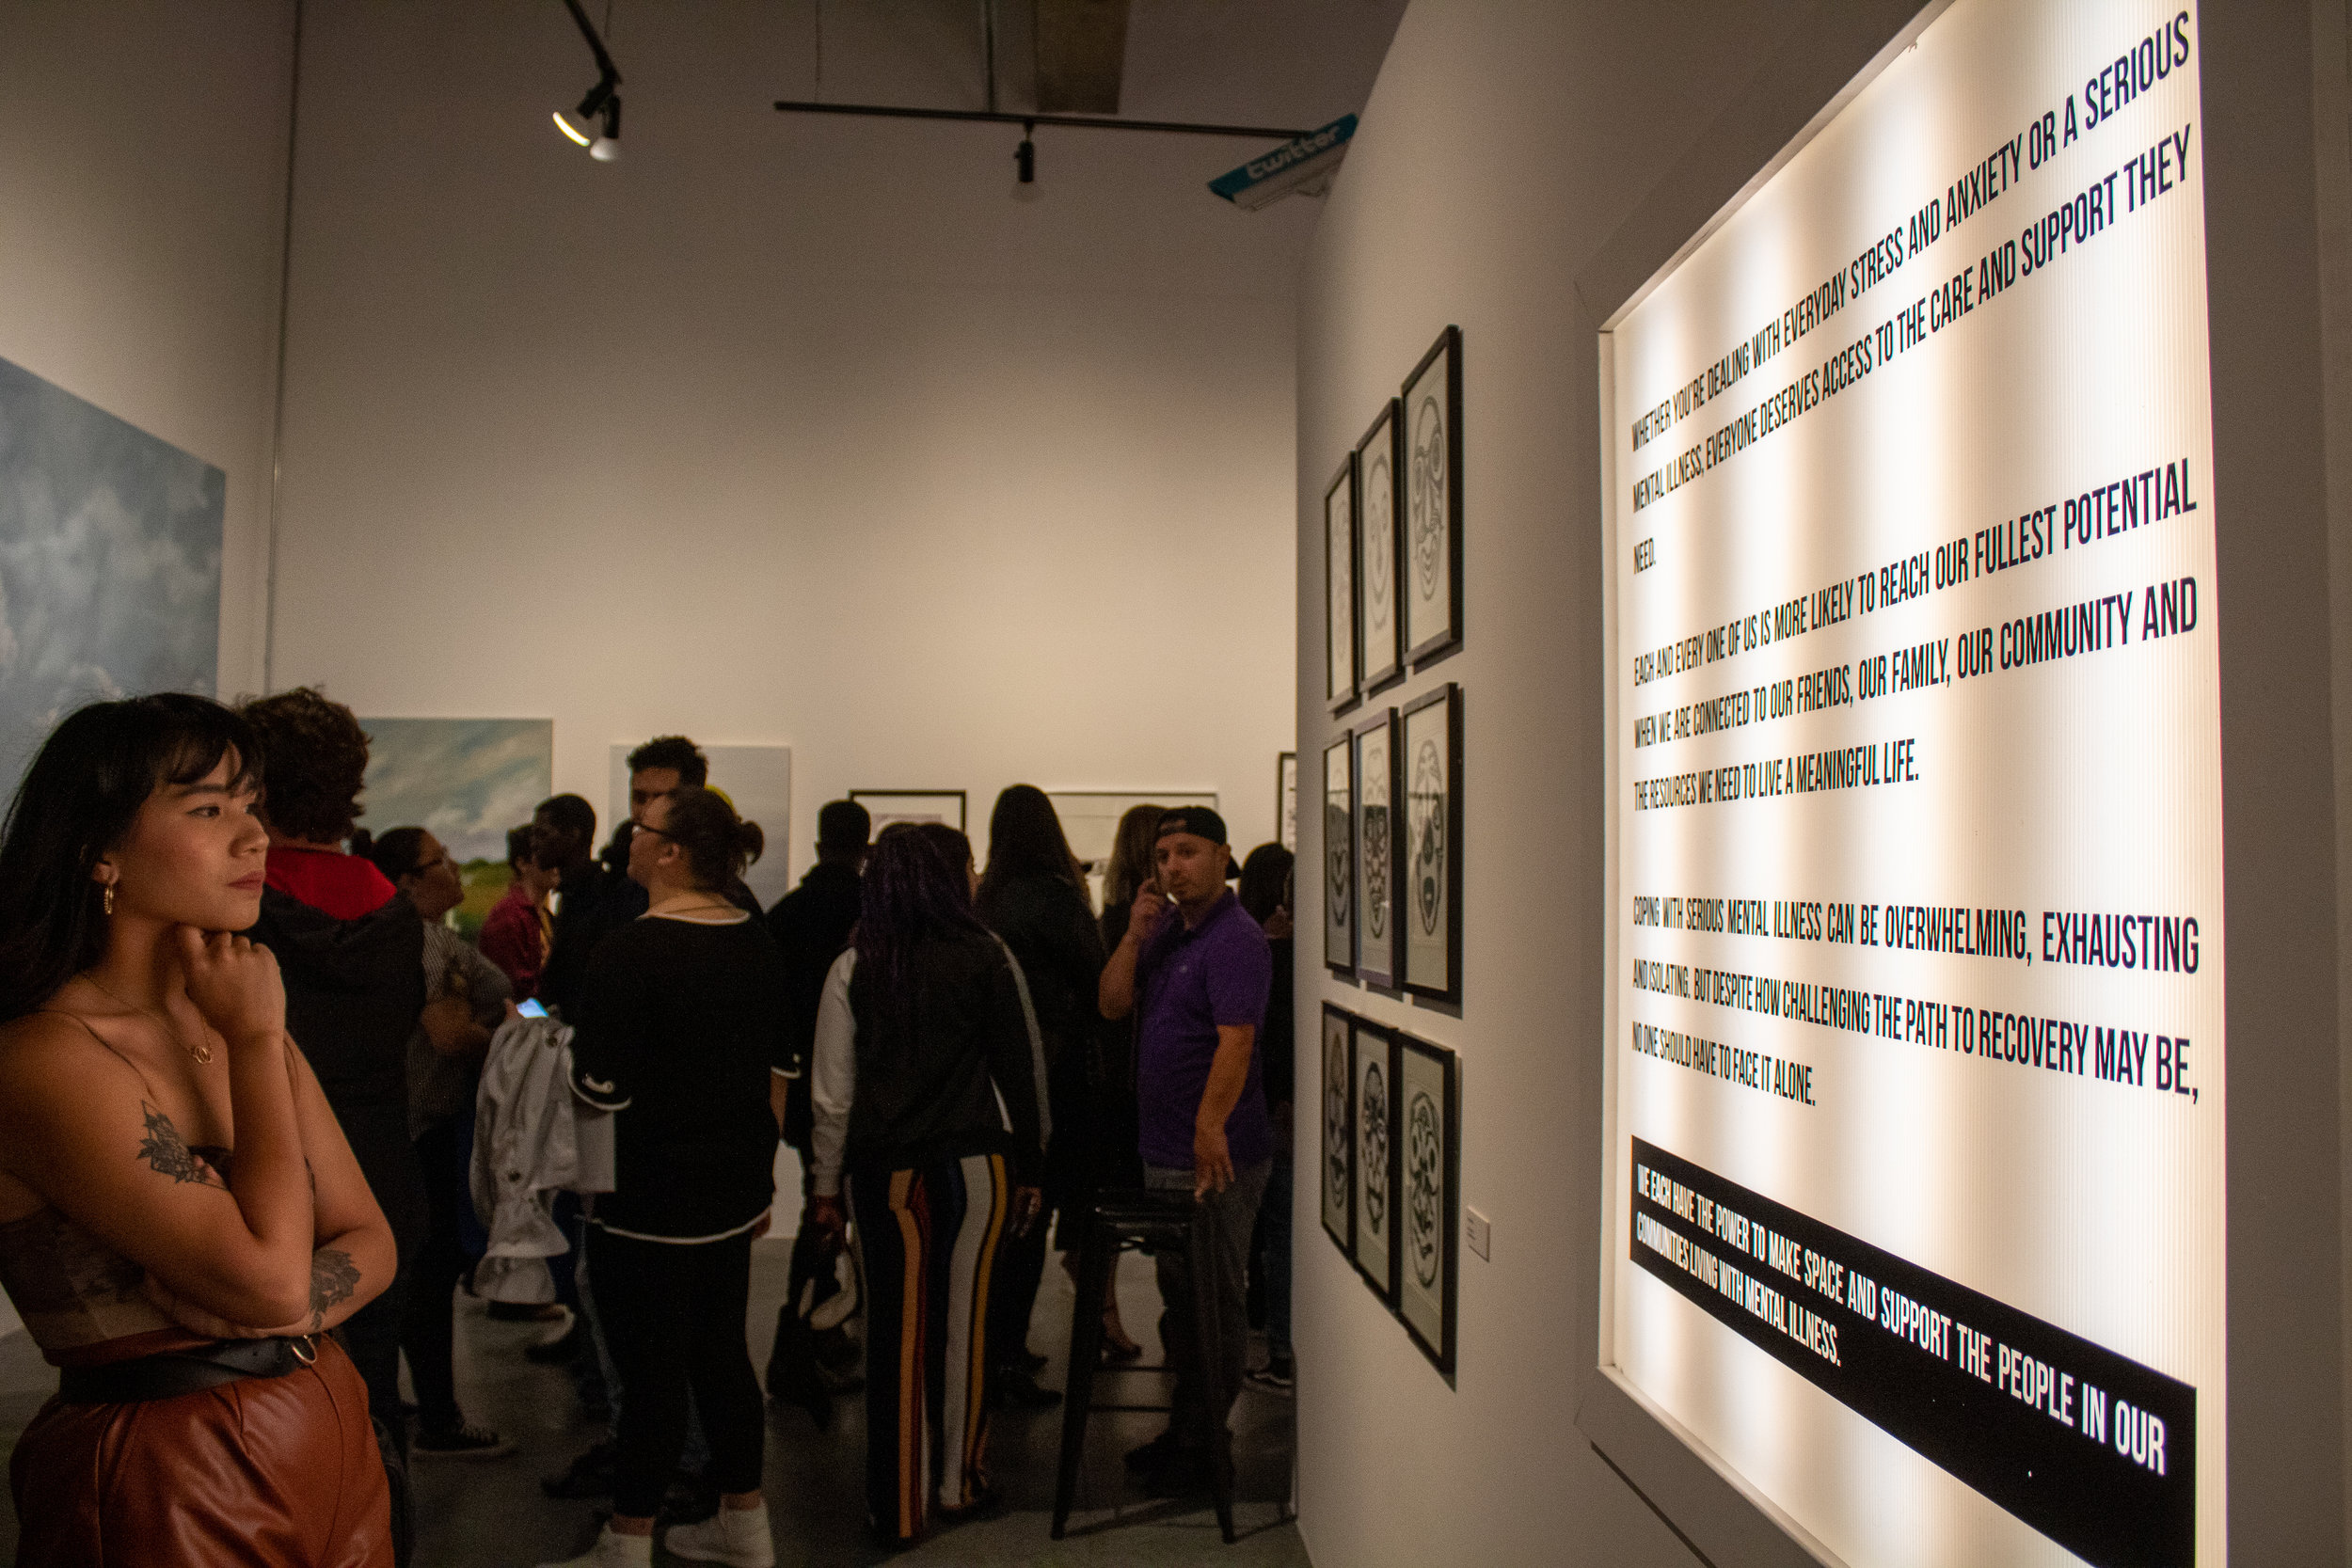 Attendees observe the exhibitions that fill the gallery space of We Rise LA on May 17, 2019. We Rise is a pop-up immersive art gallery and community space in Los Angeles, California, focused on themes of Connectedness and Purpose, aiming to engage with the public through the arts. Danica Creahan / The Corsair